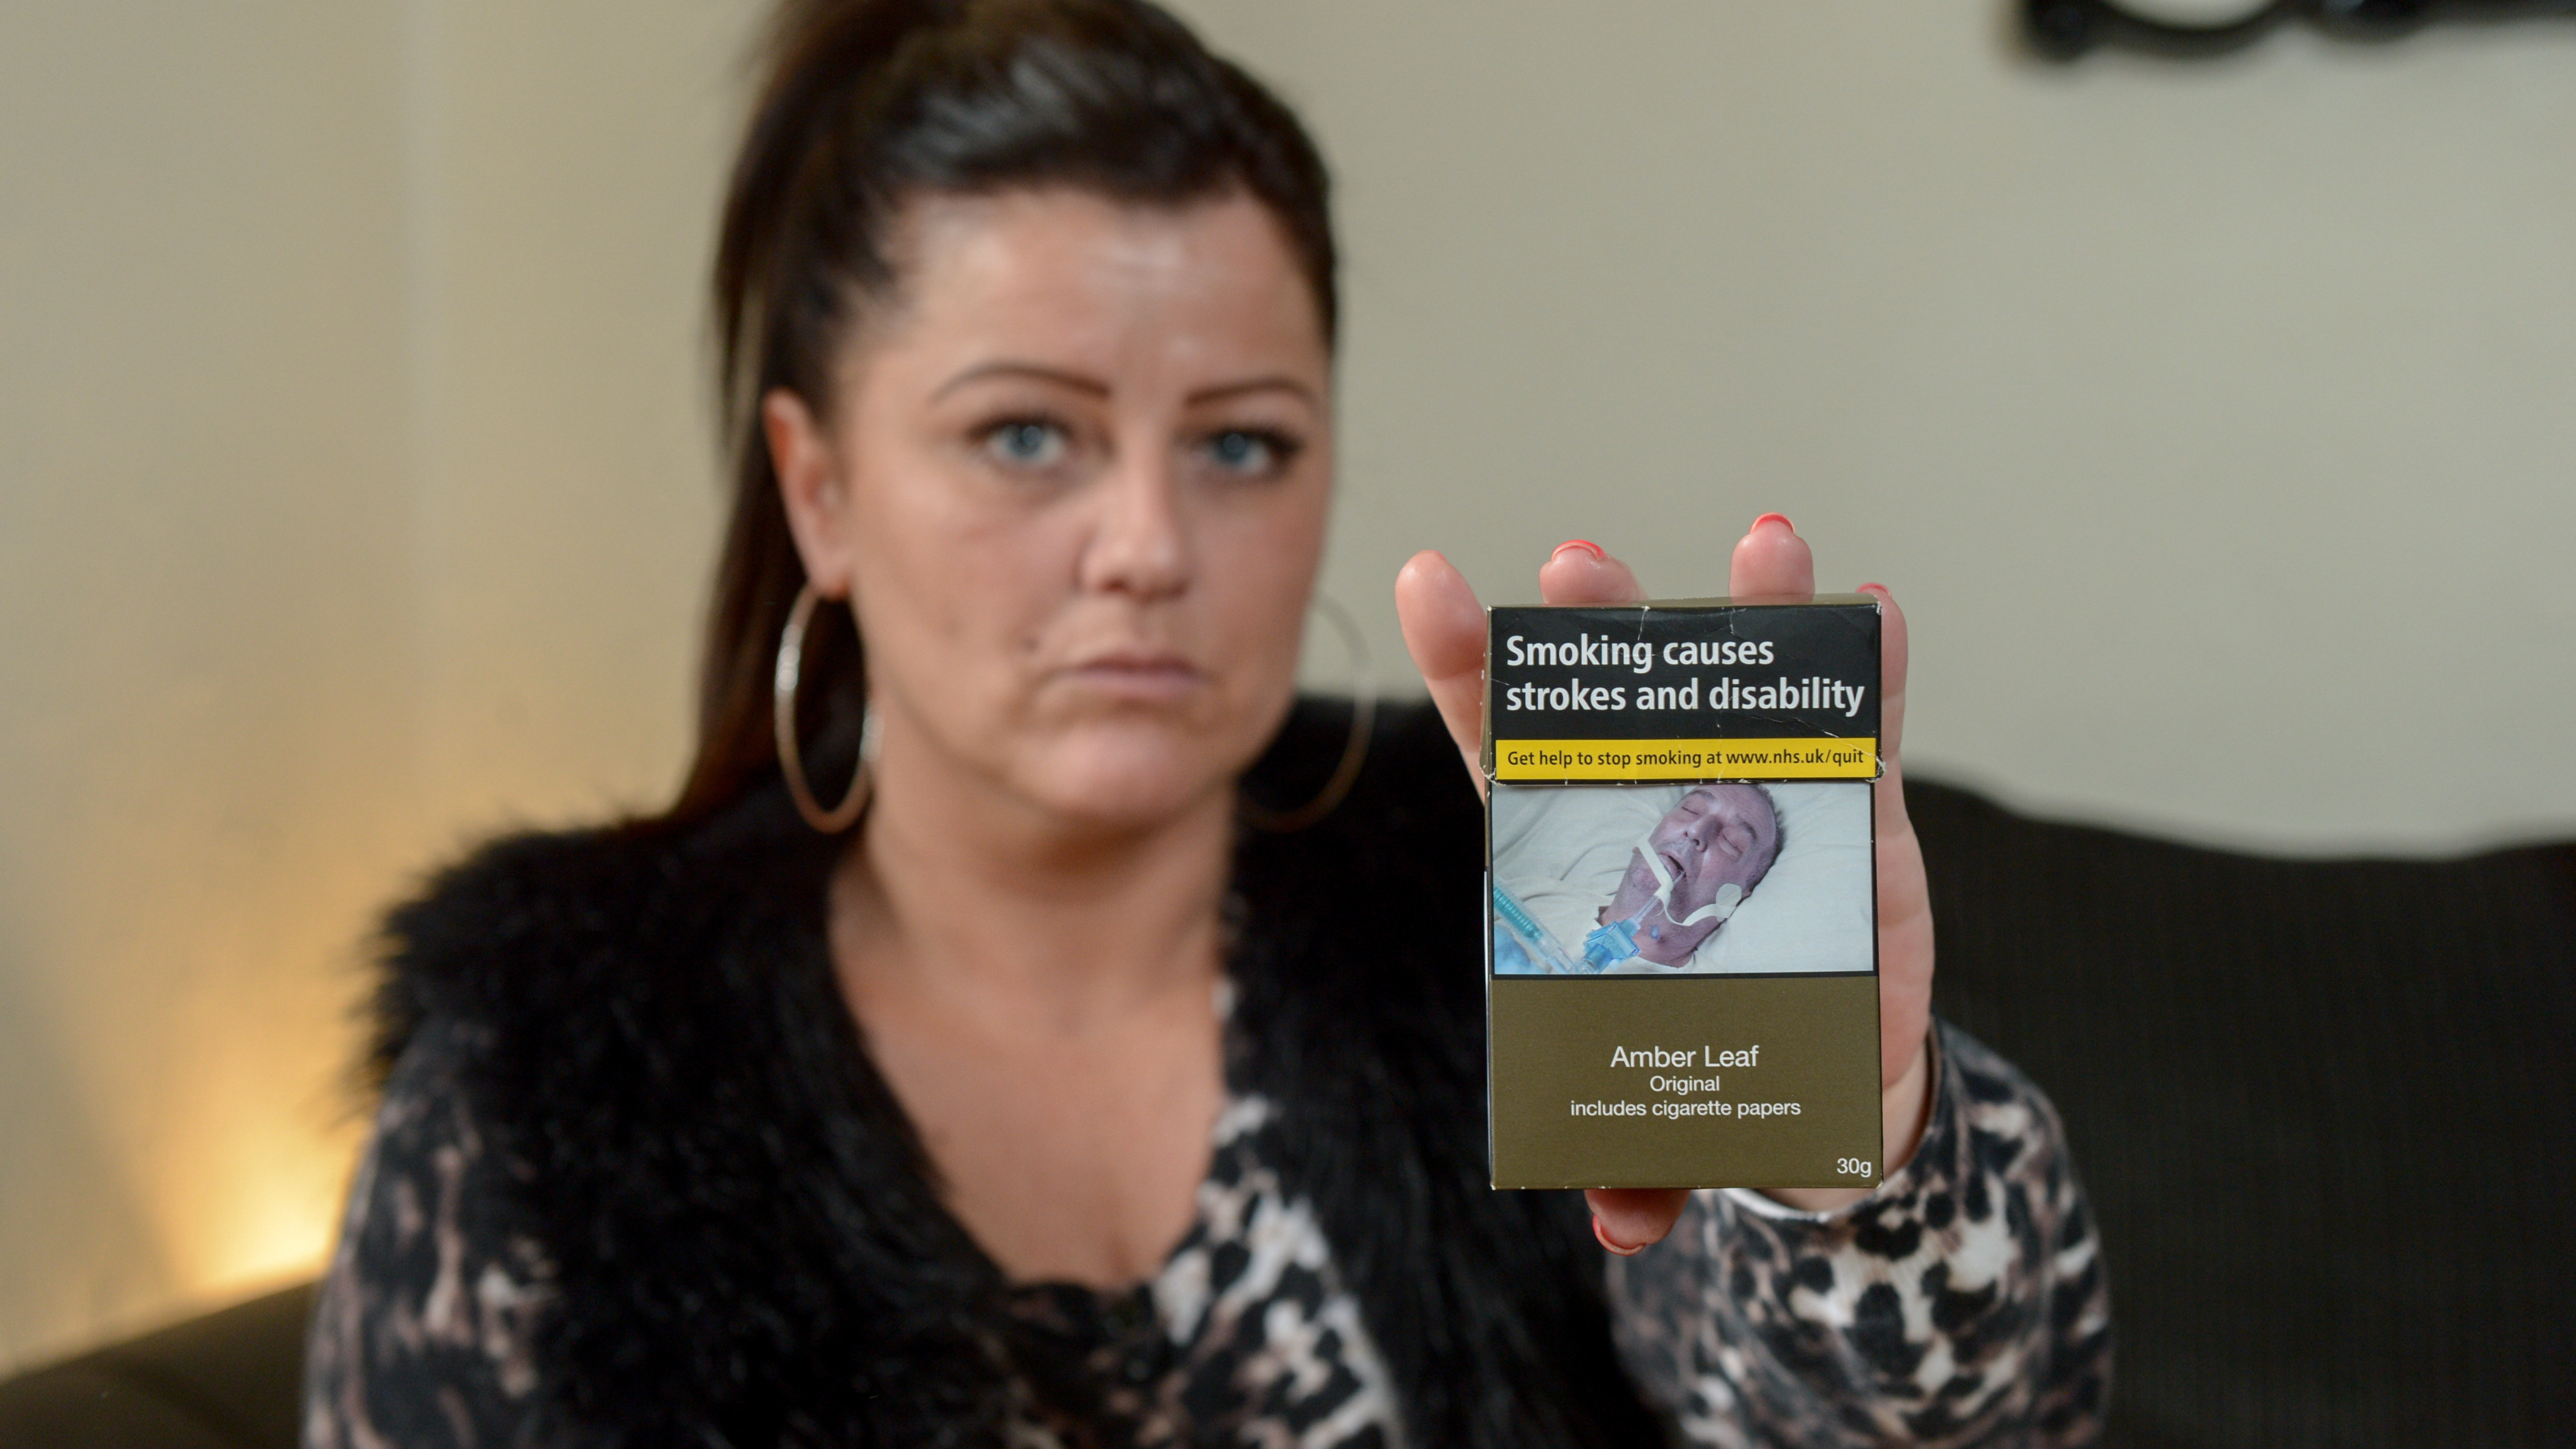 Daughter Horrified To Find Pictures Of Dead Dad On Cigarette Packets